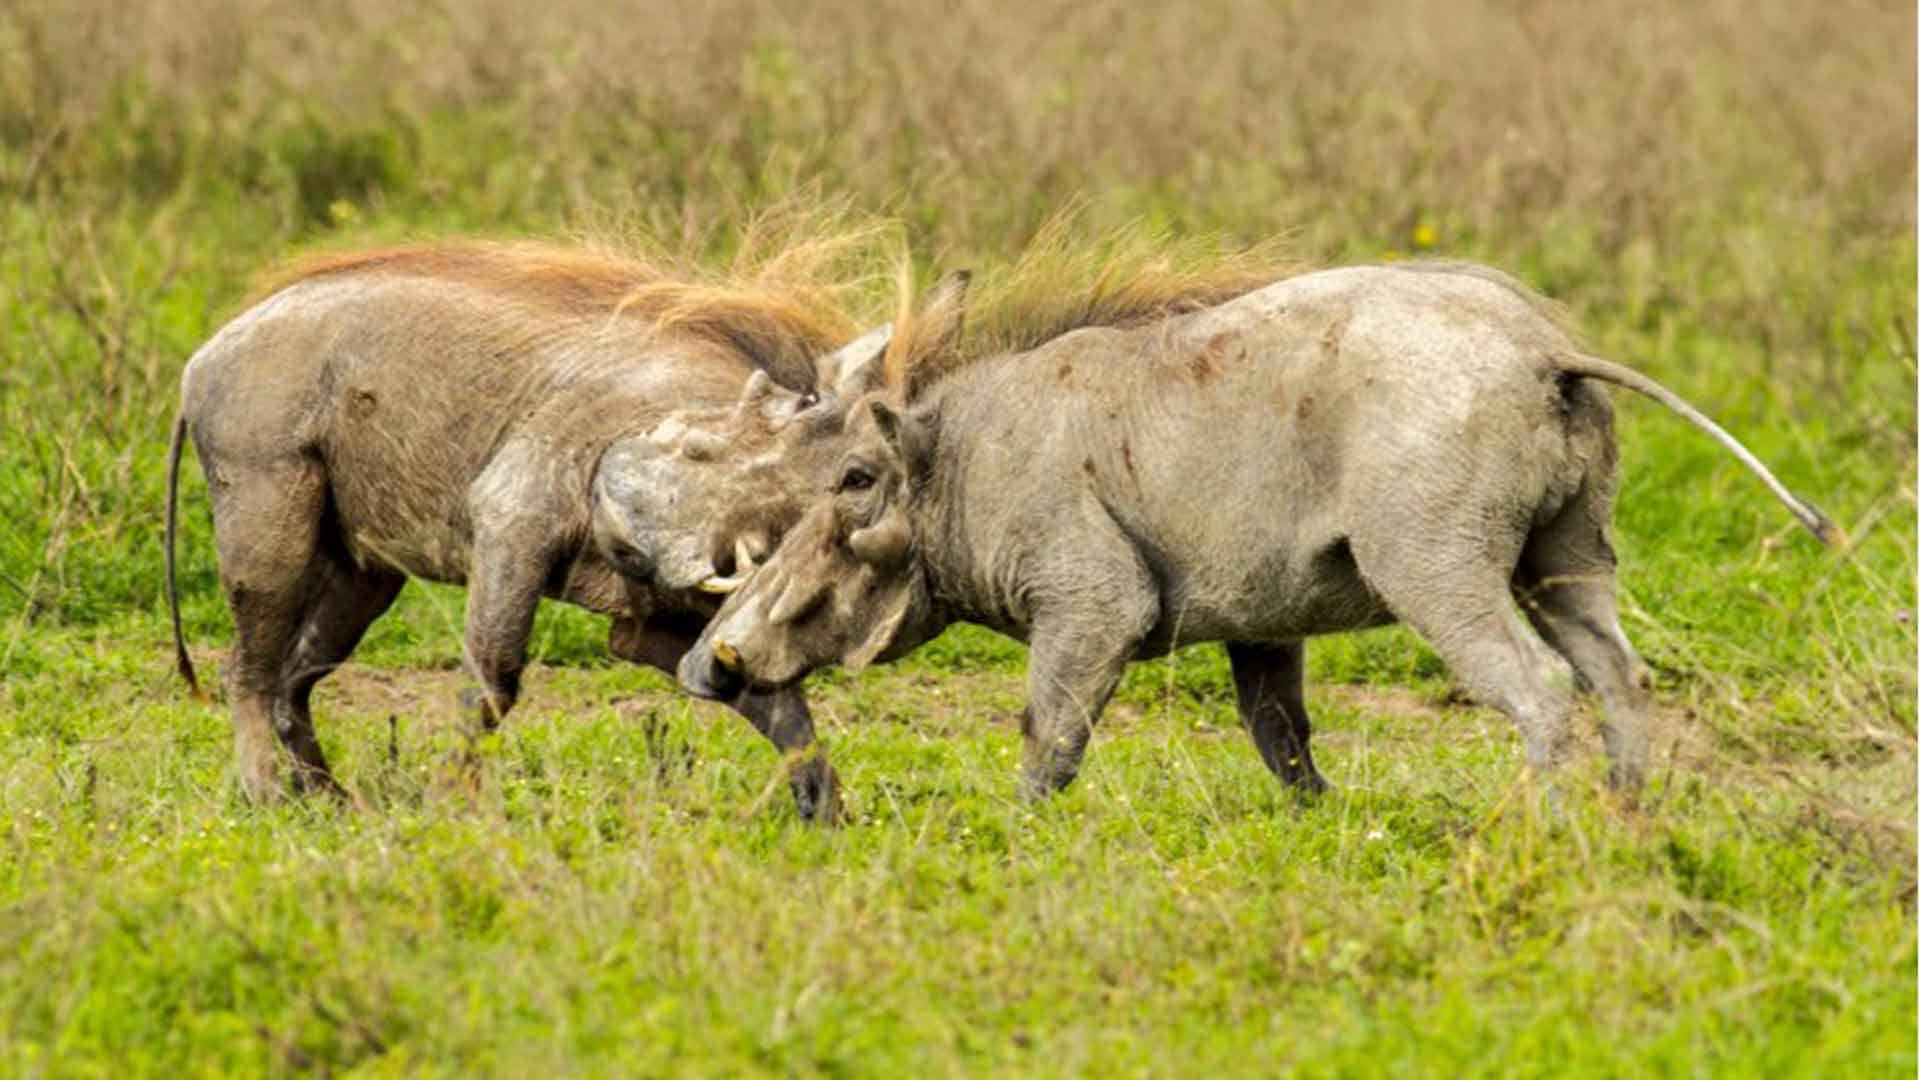 warthogs fighting together on safari tour of africa